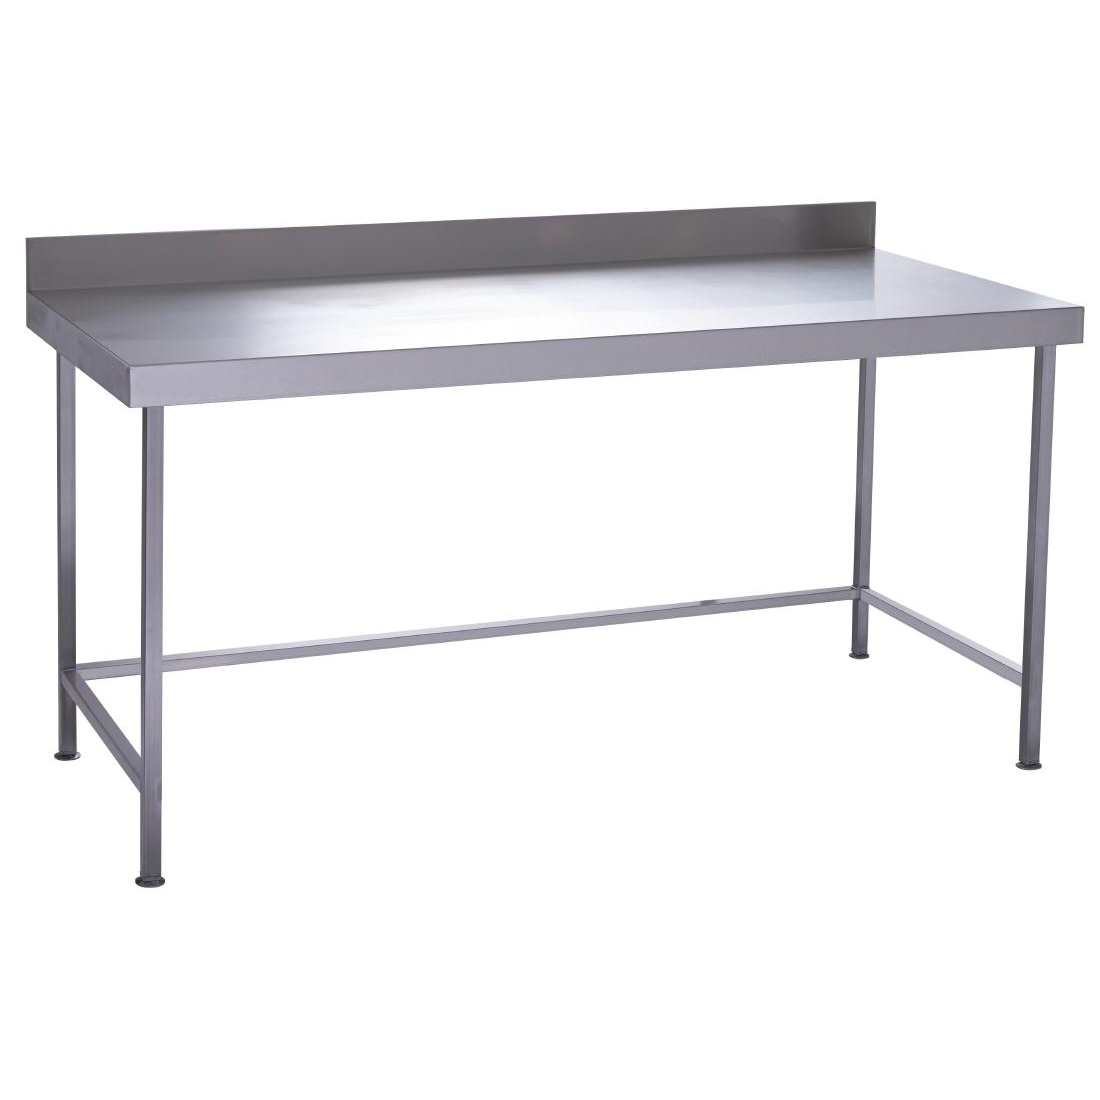 Parry Fully Welded Stainless Steel Wall Table 900x600mm